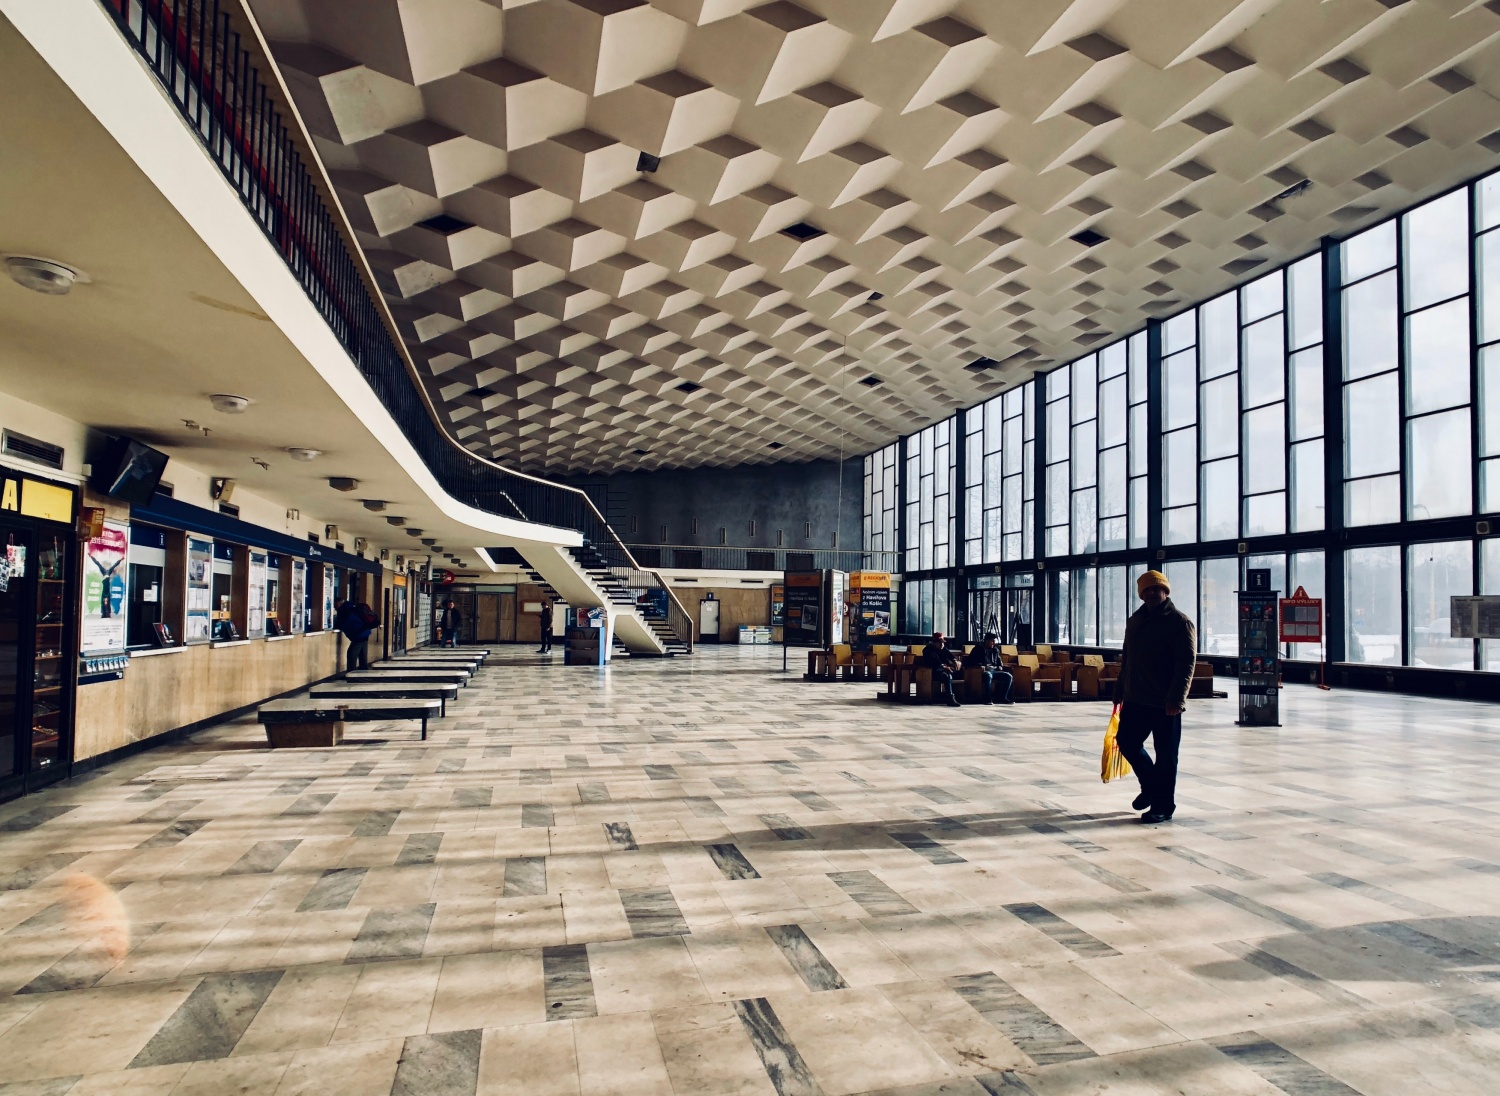 The train station main vestibule, with geometric floor and ceiling patterns, in the Czech-Silesian mining city of Havířov, Czech Republic.